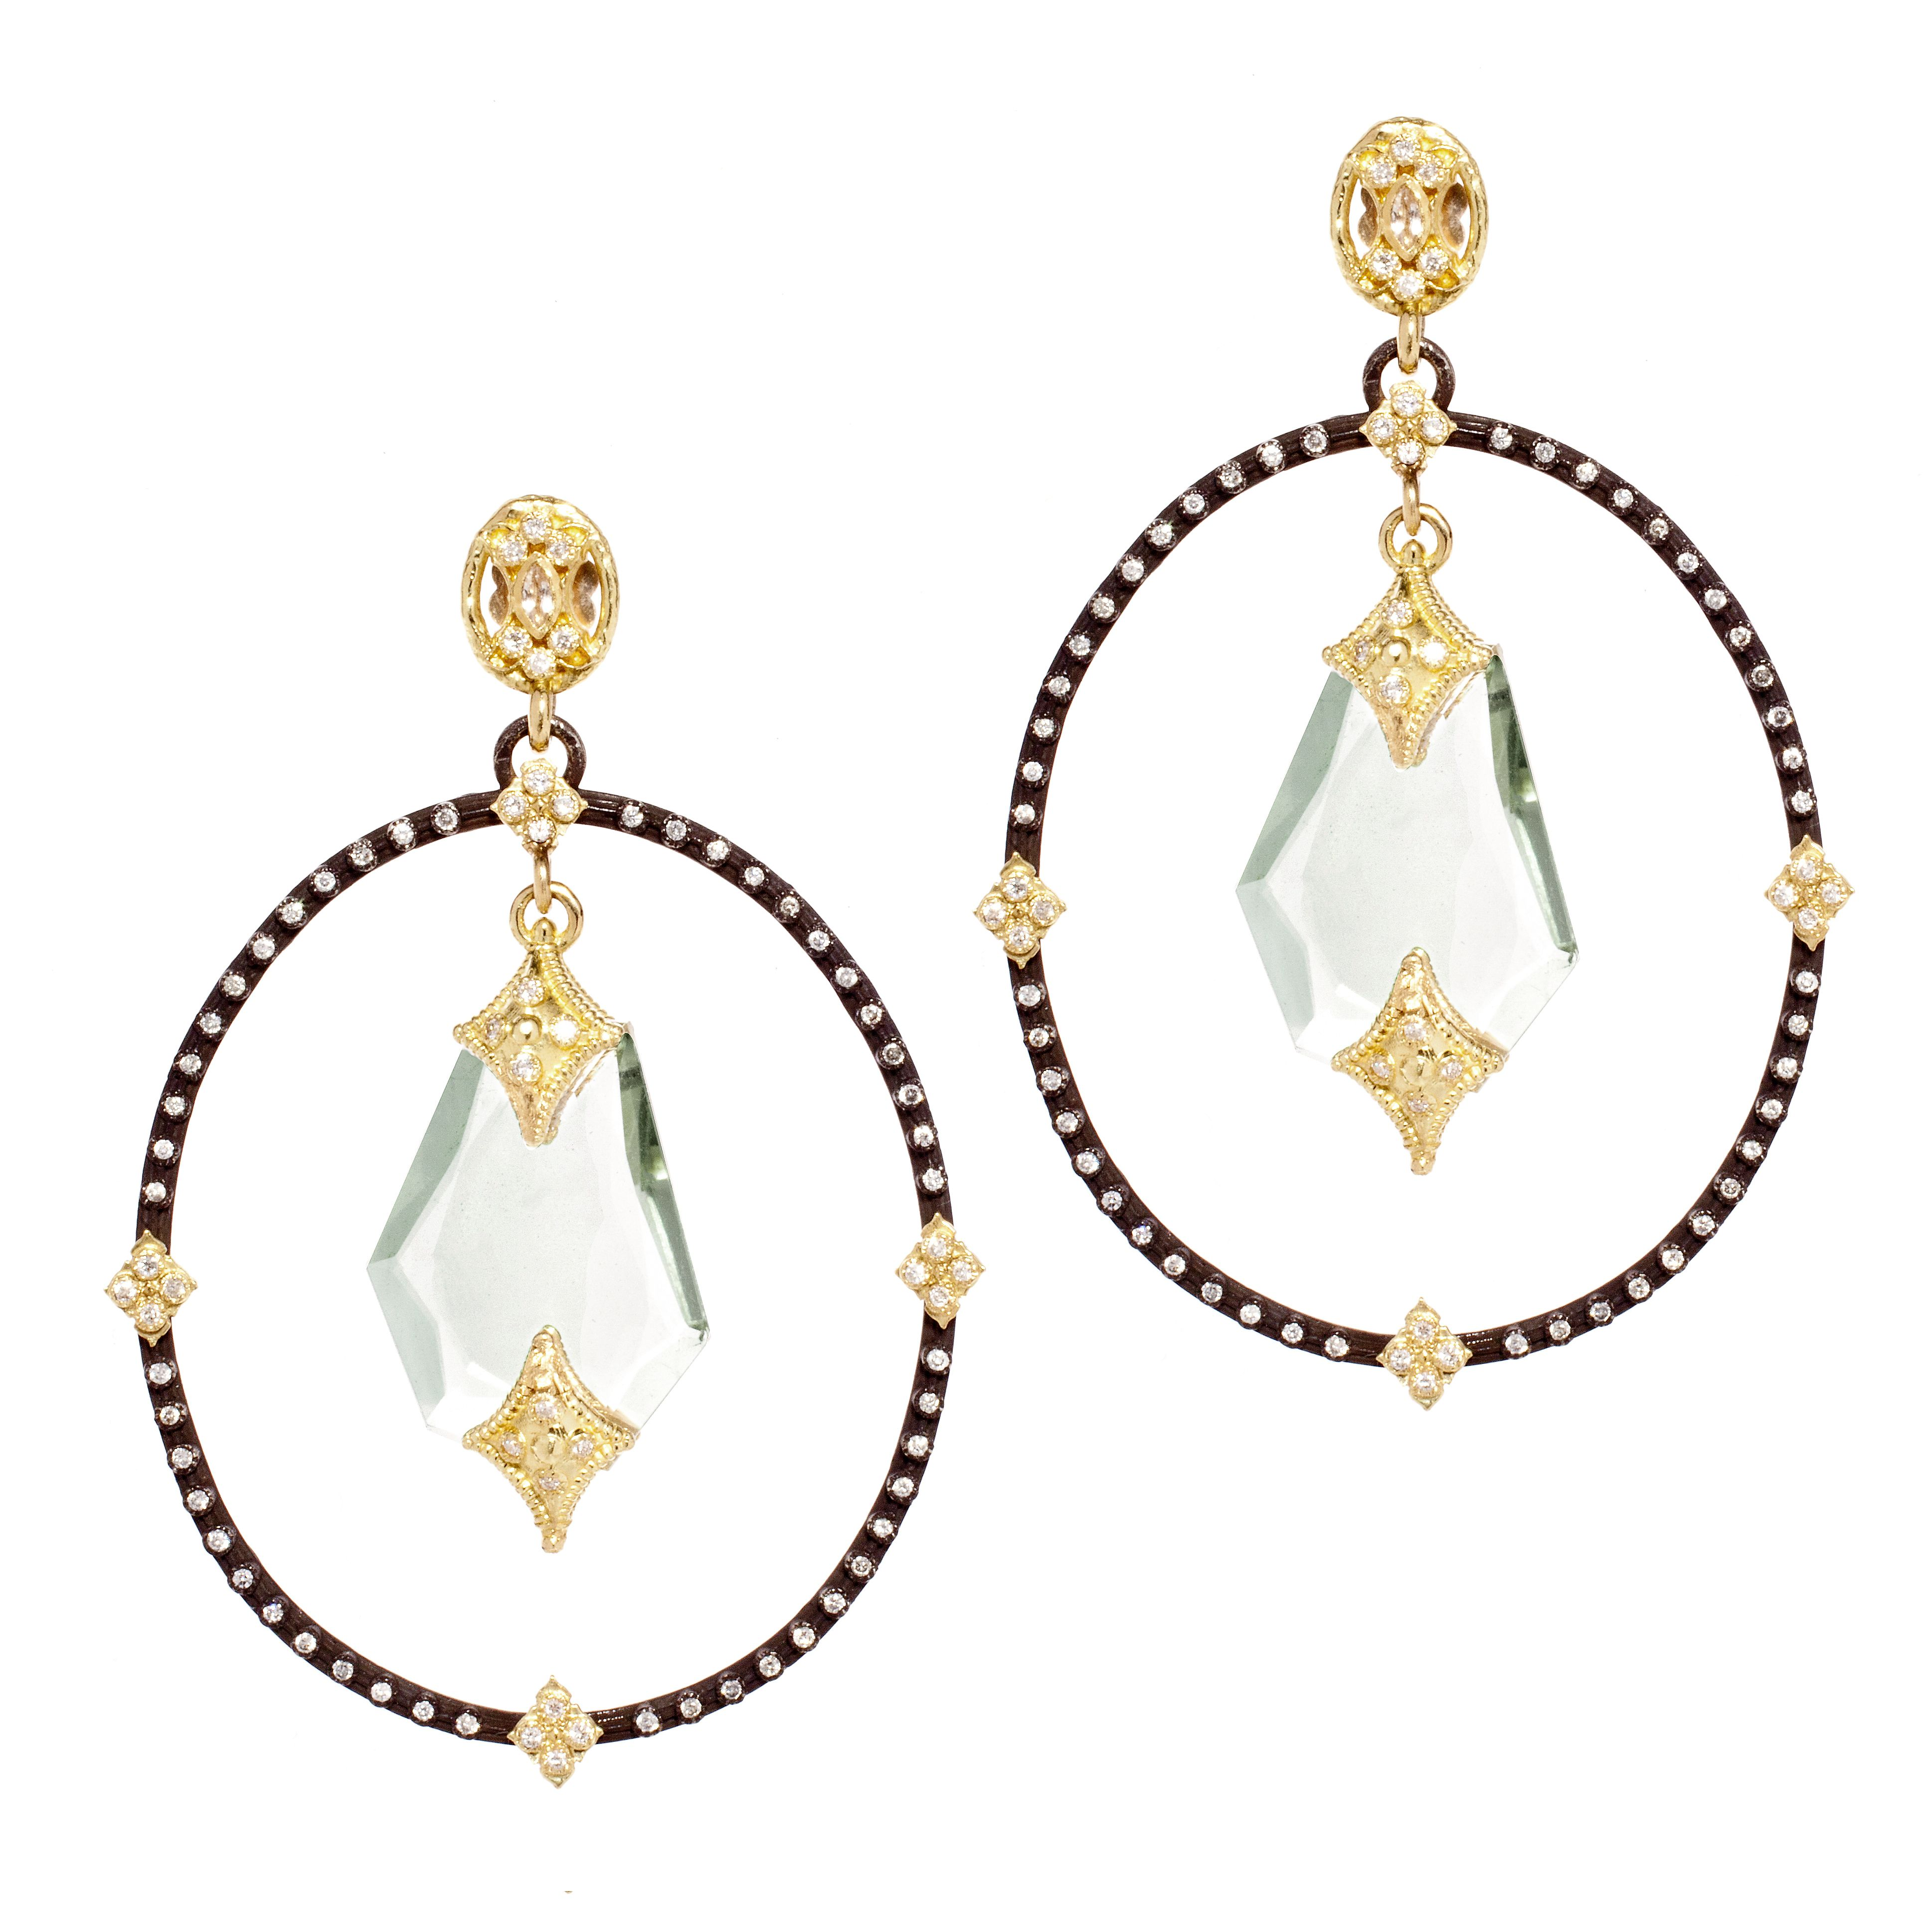 Stunning Diamond Earrings With Green Amethyst Slices Image Property Of